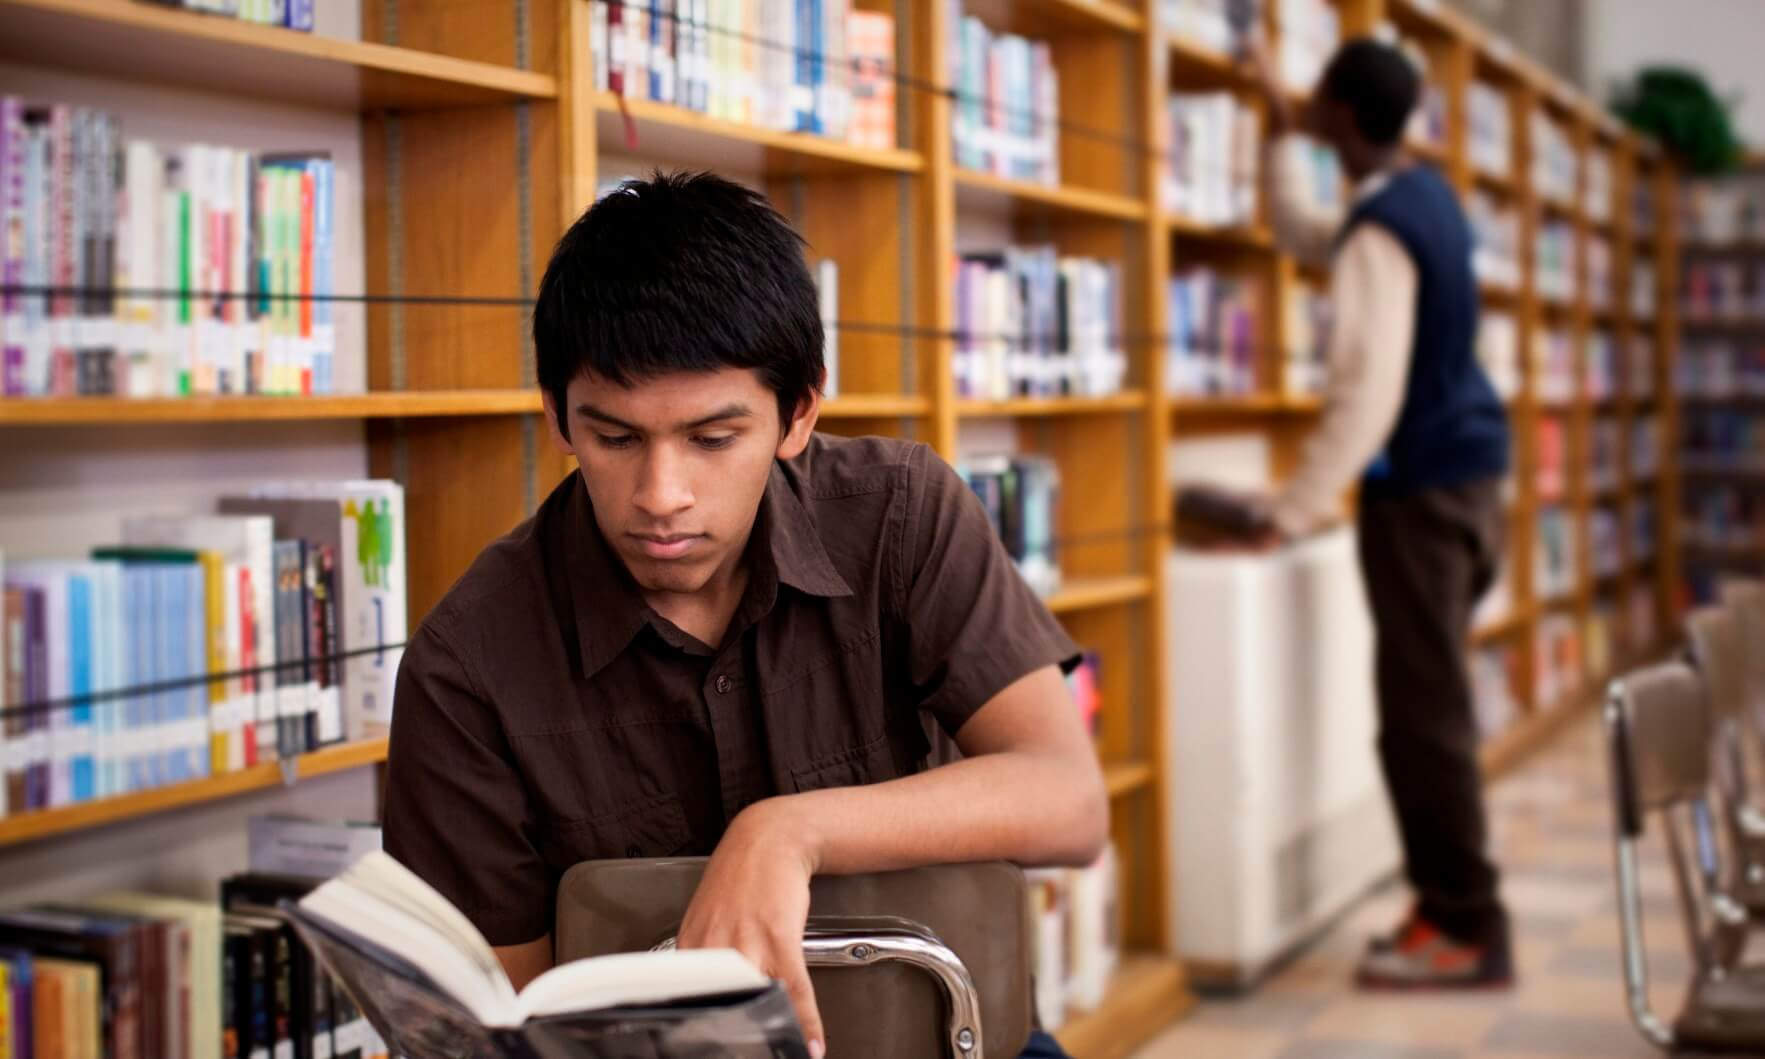 Teenage boy reading in school library